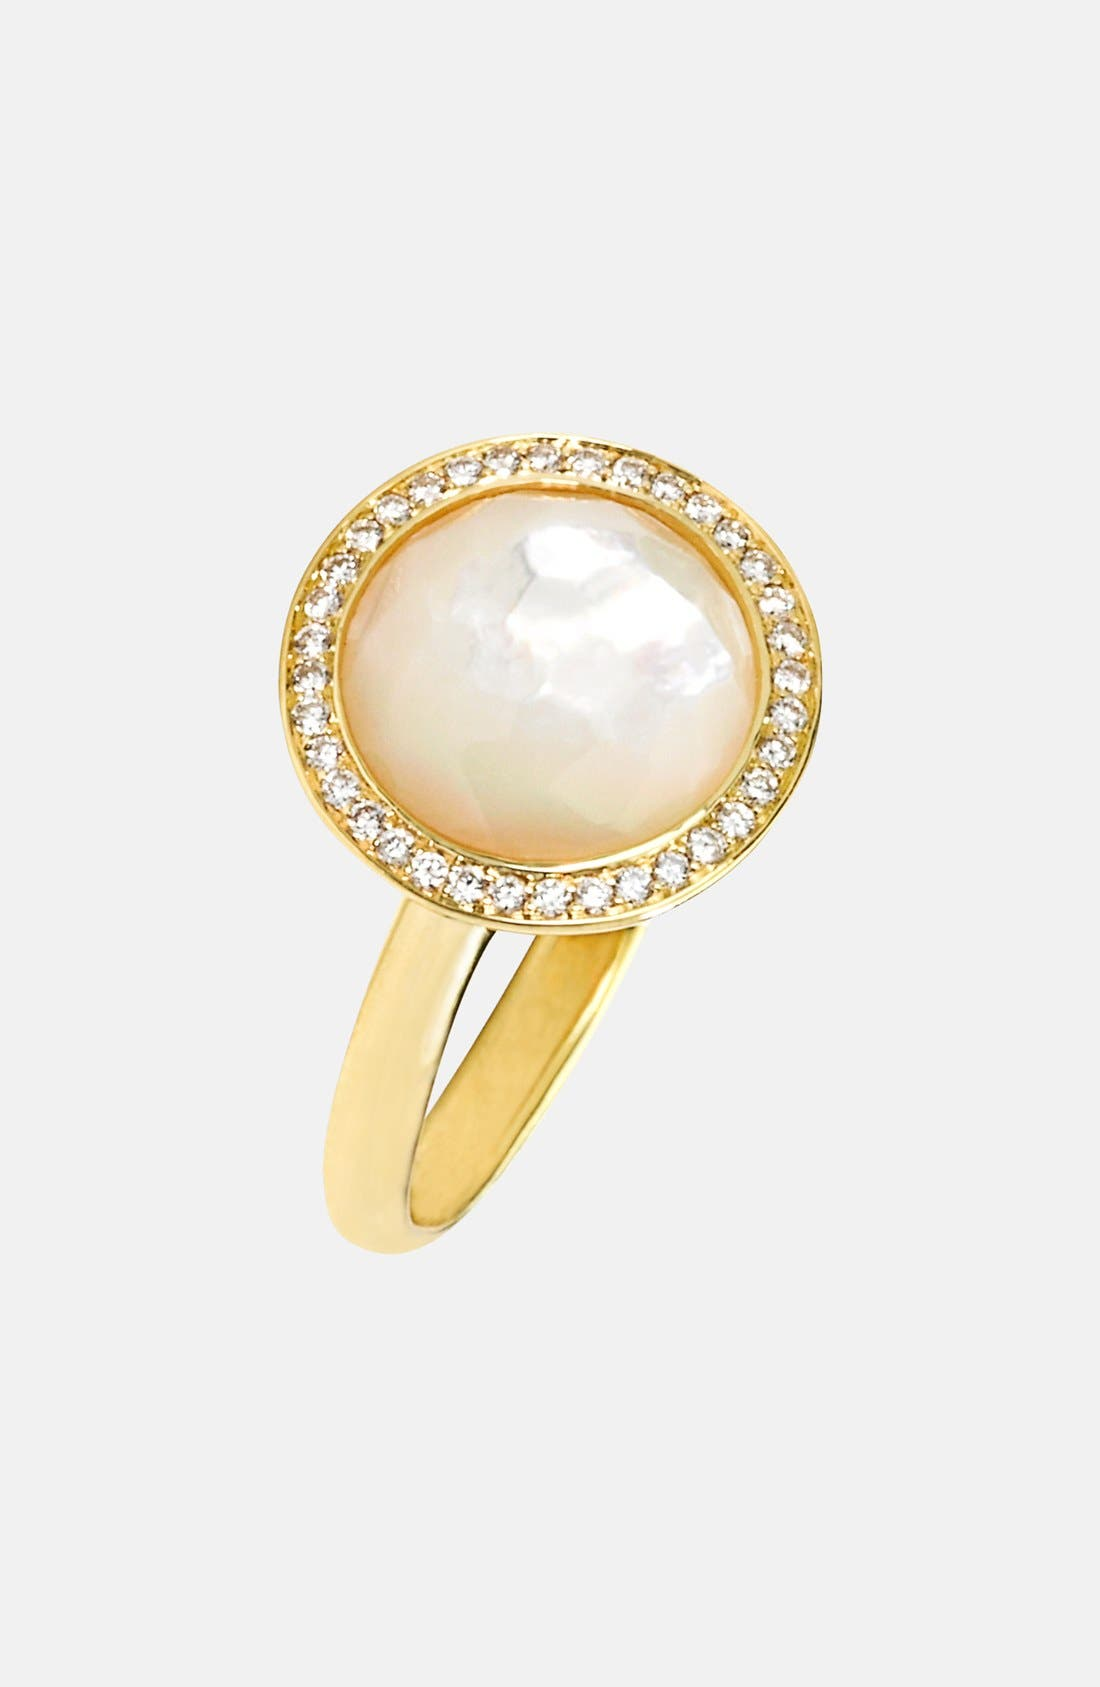 Main Image - Ippolita 'Rock Candy - Lollipop' 18k Gold Cocktail Ring with Diamonds